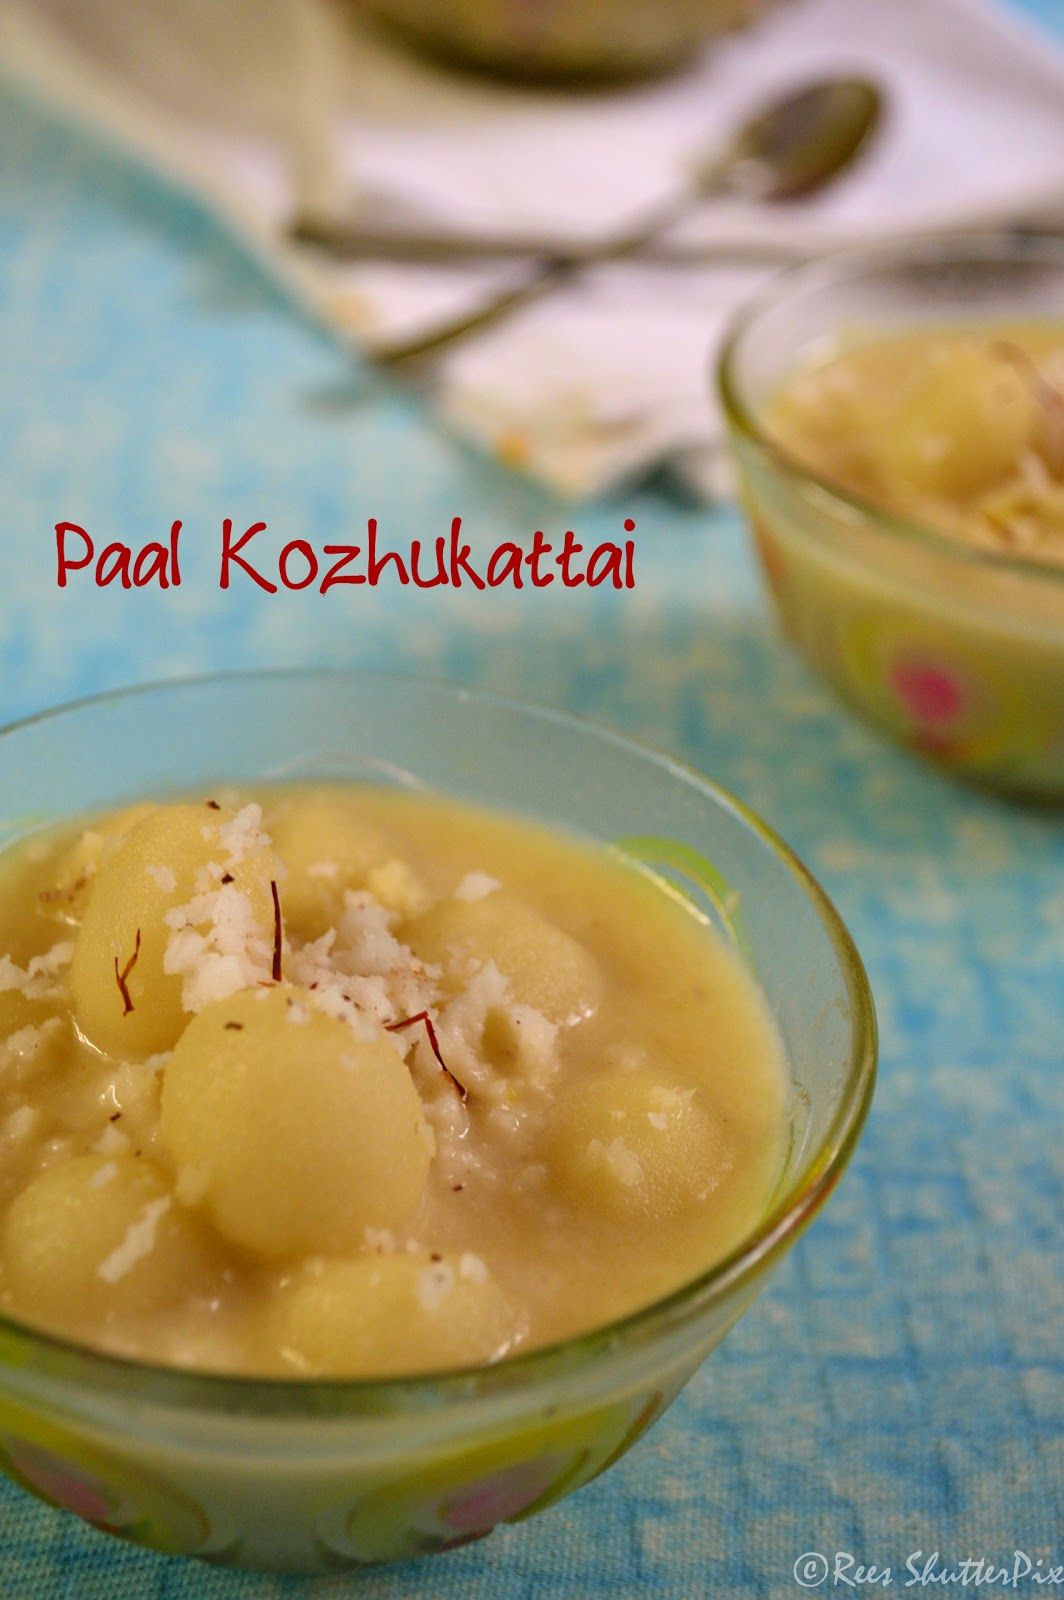 how to make paal kozhukkatai, chettinad paal kozhukattai recipe, step wise pictures